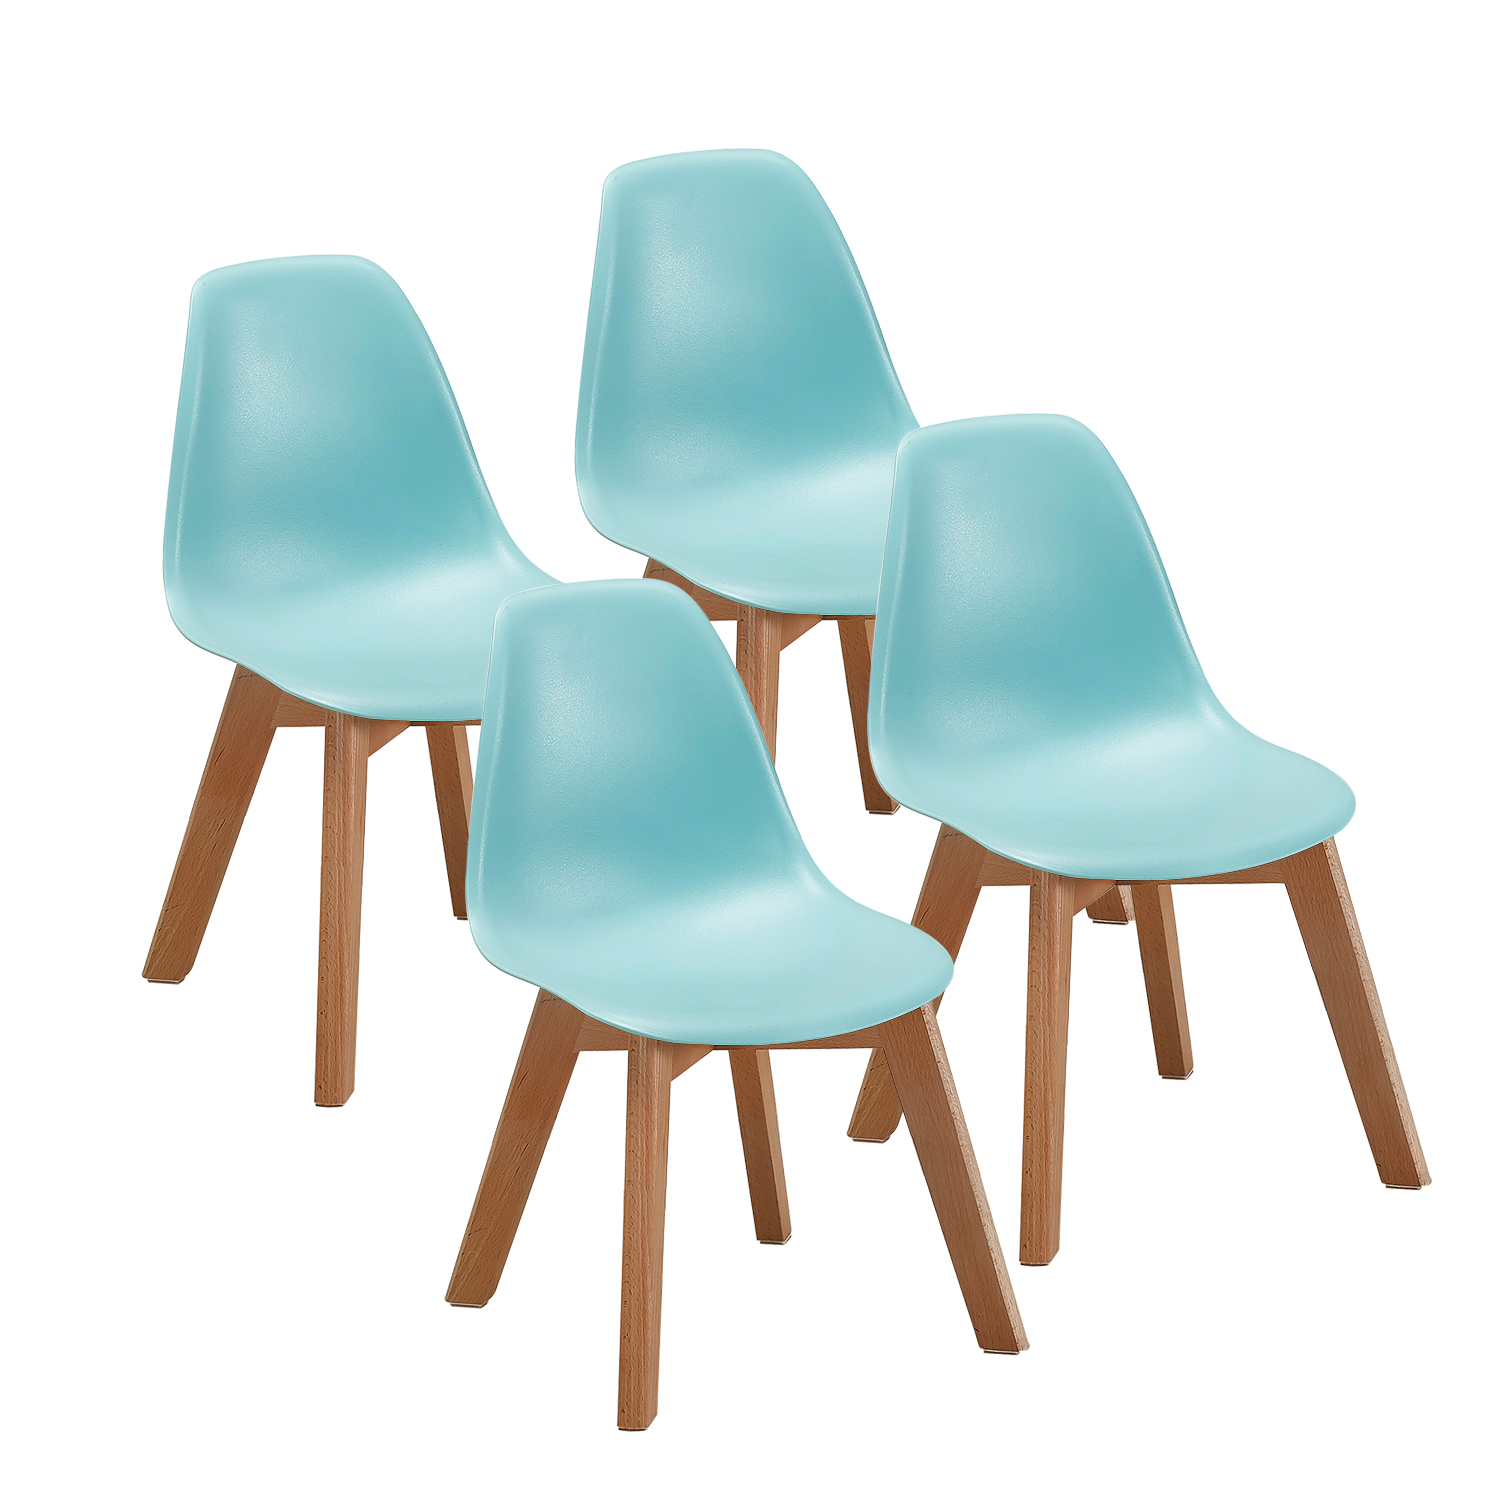 Toddler Wooden Chair Vecelo Toddler Pre School Chair Dining Chairs Kids 4 Set Wooden Legs With Rubber Foot Protector Comfortable Height Eco Friendly Plastic Light Blue